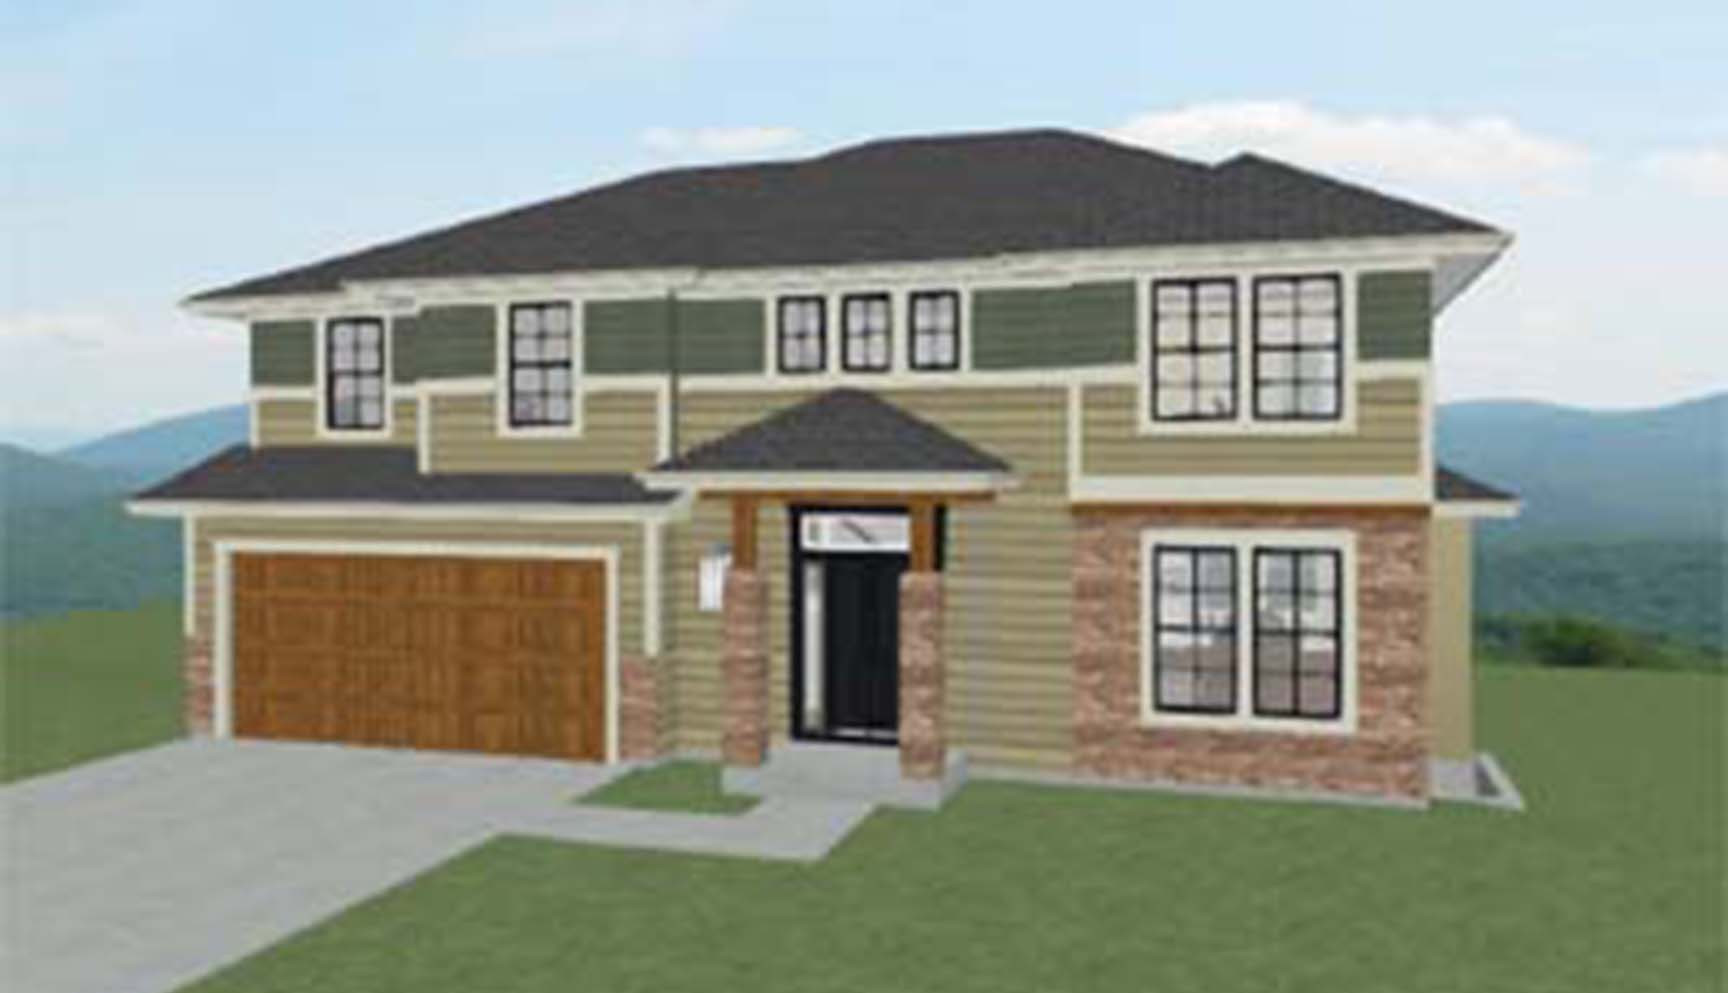 The Orlando Front Elevation